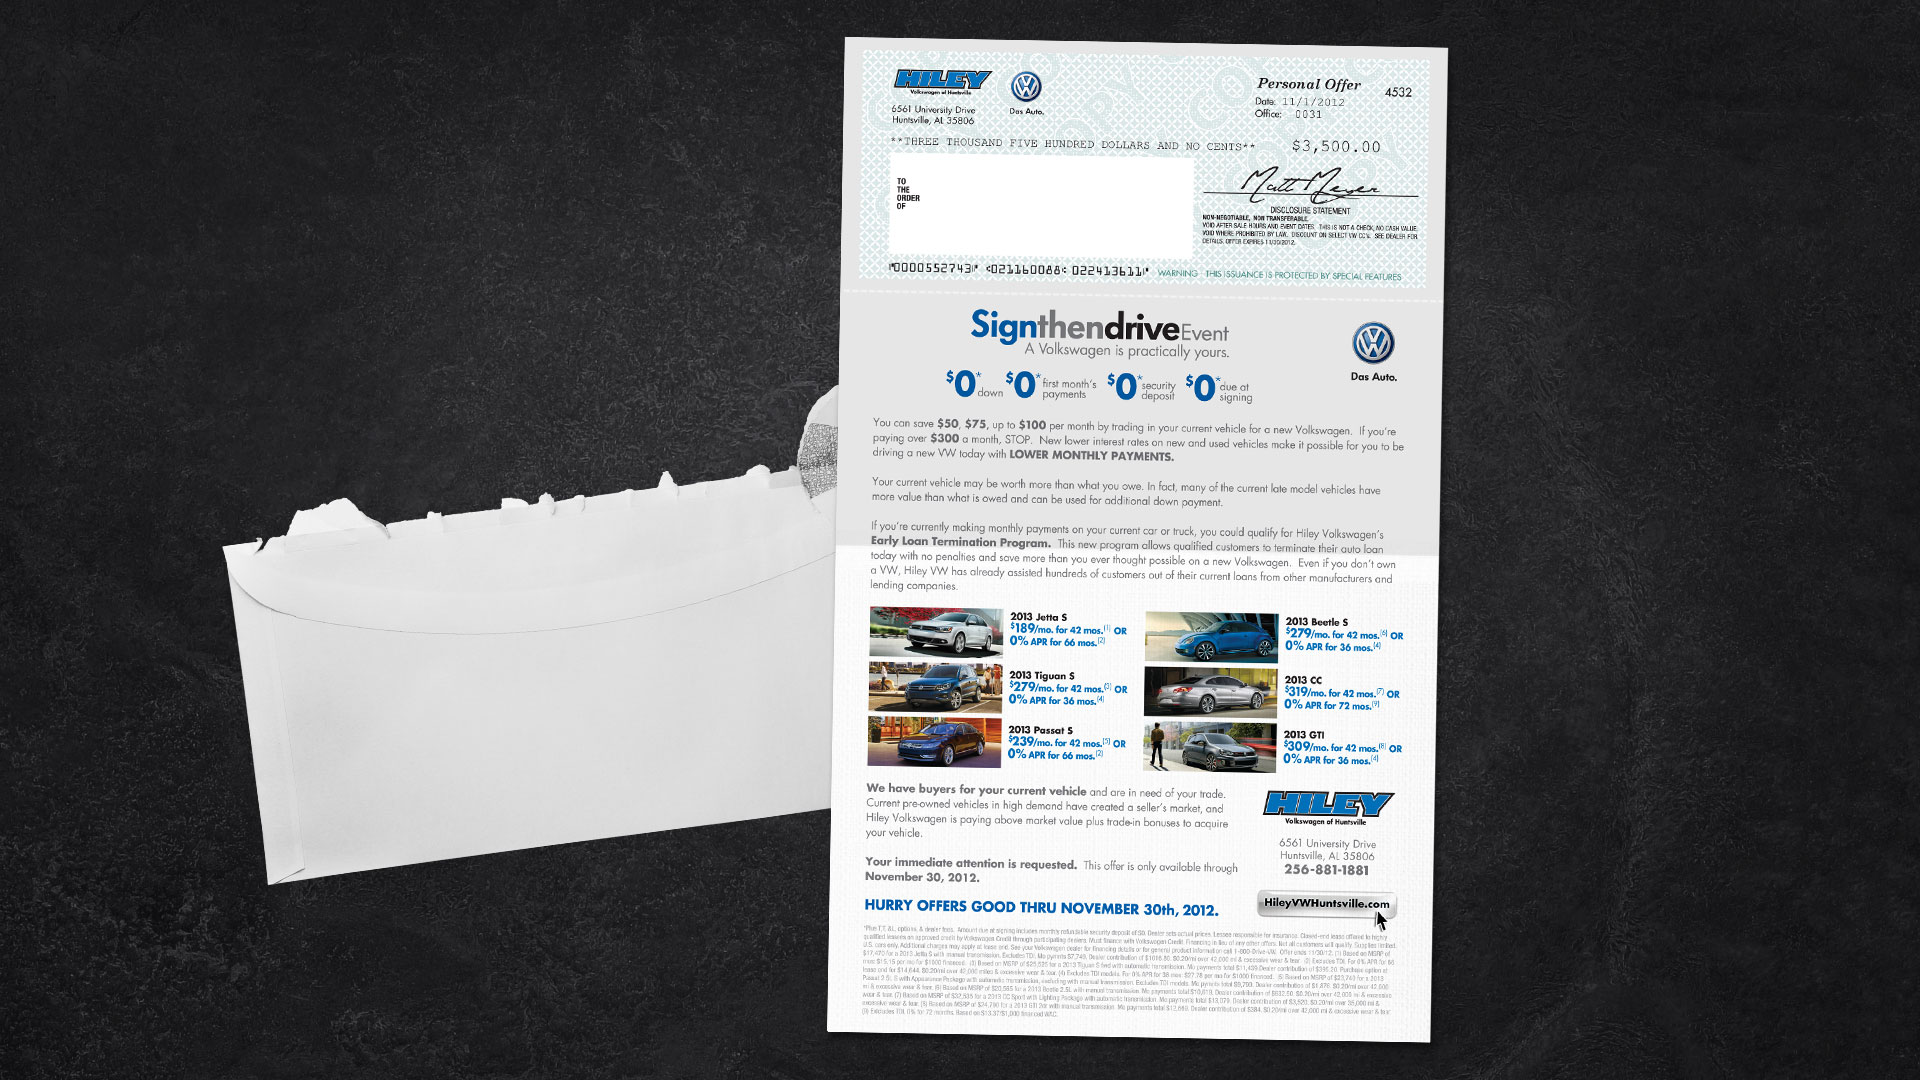 Direct Mail: Hiley VW Sign and Drive